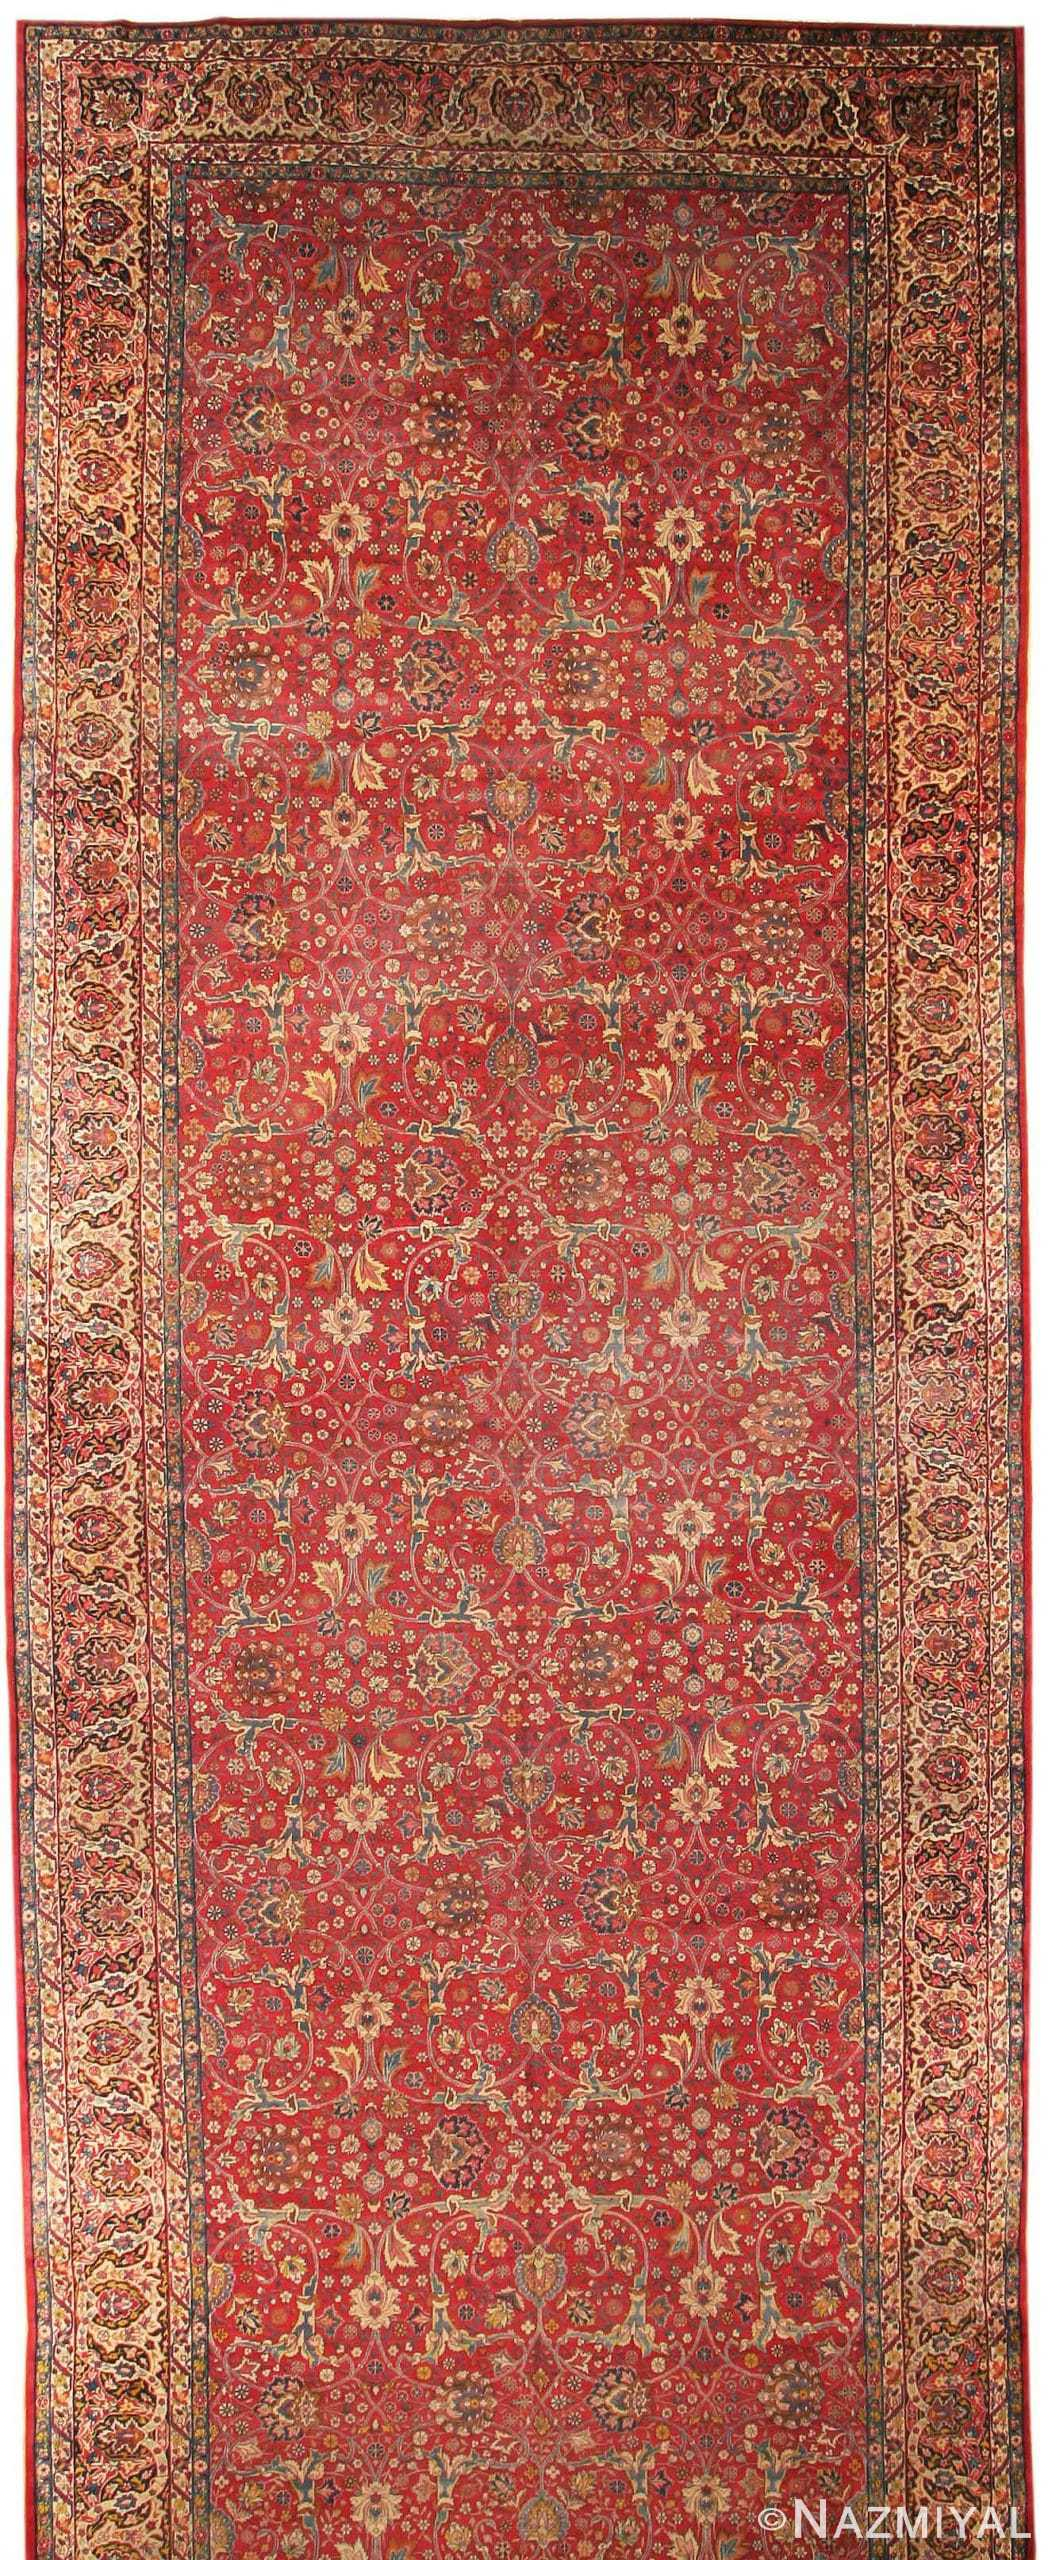 Antique Kerman Persian Rug 43429 Nazmiyal